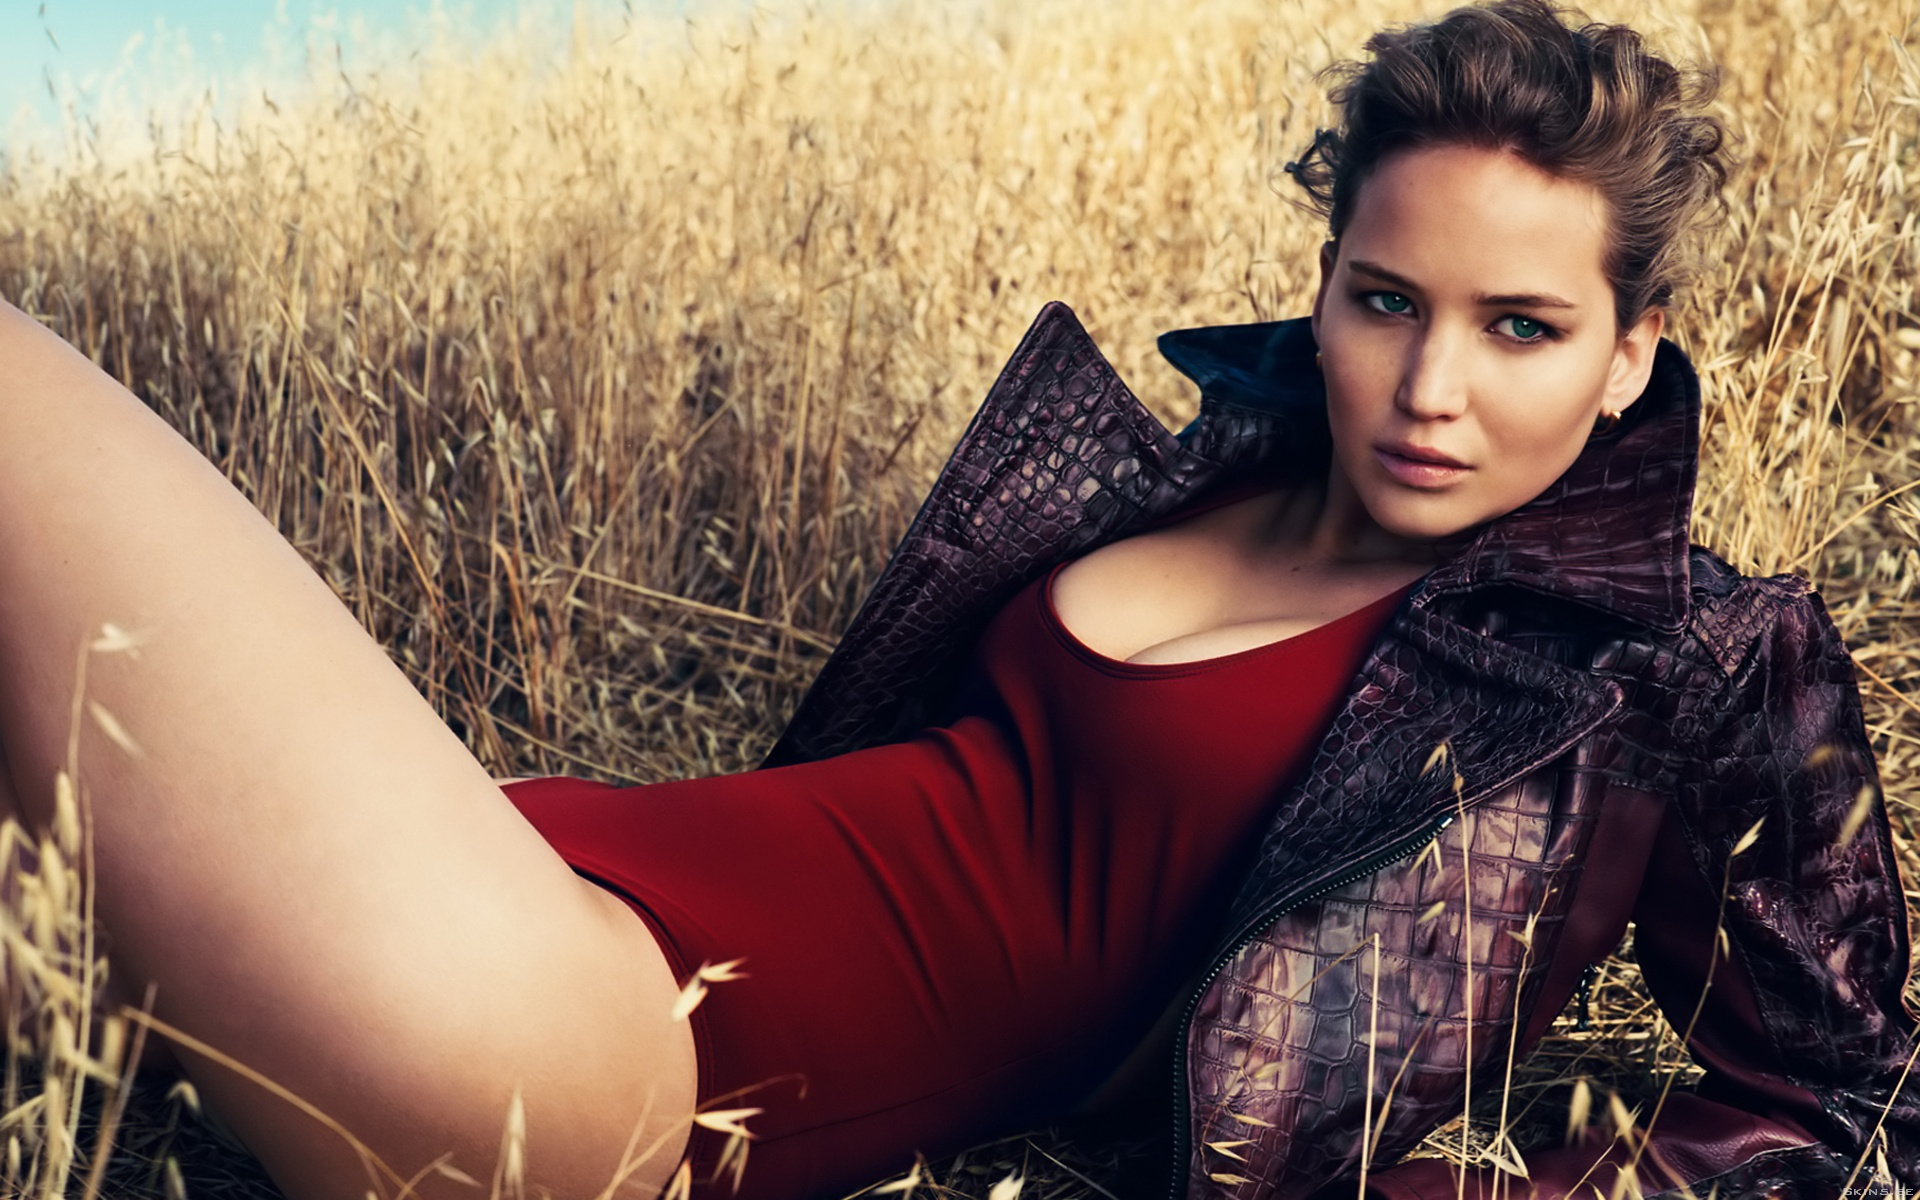 super-hot-jennifer-lawrence-widescreen-background-wallpaper-jennifer-lawrence-free-desktop-pictures-download